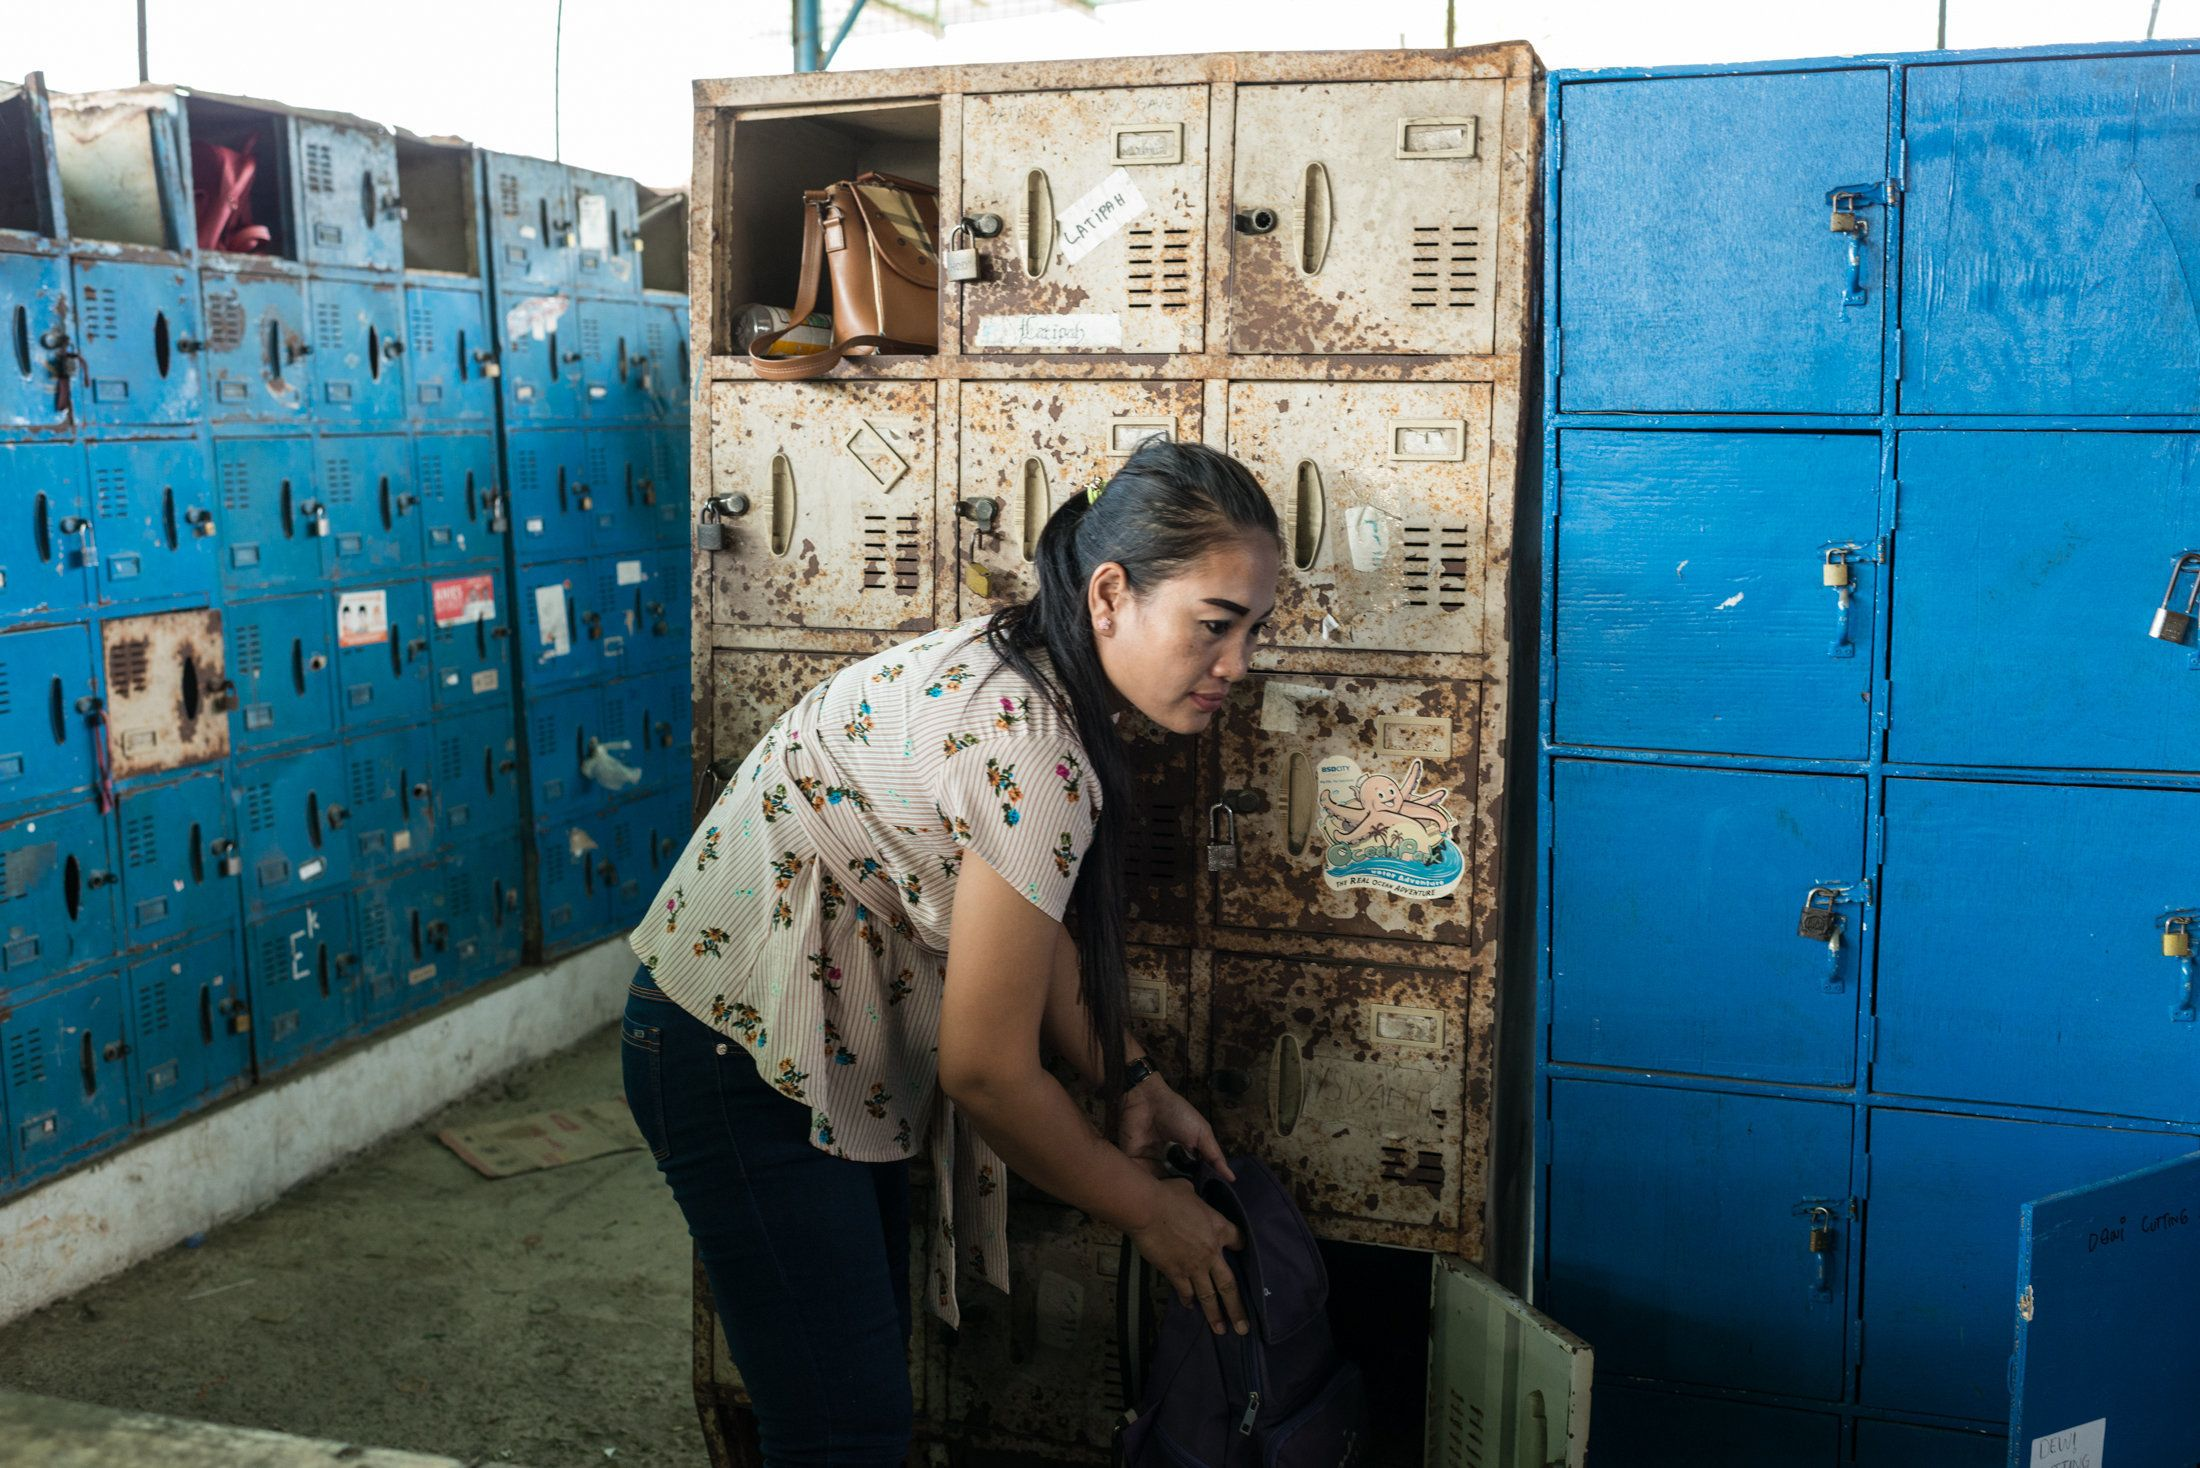 Istiyaroh, 35, an employee at Kaho Indah Citra Garment factory in North Jakarta, collects her bag from a locker when she fini